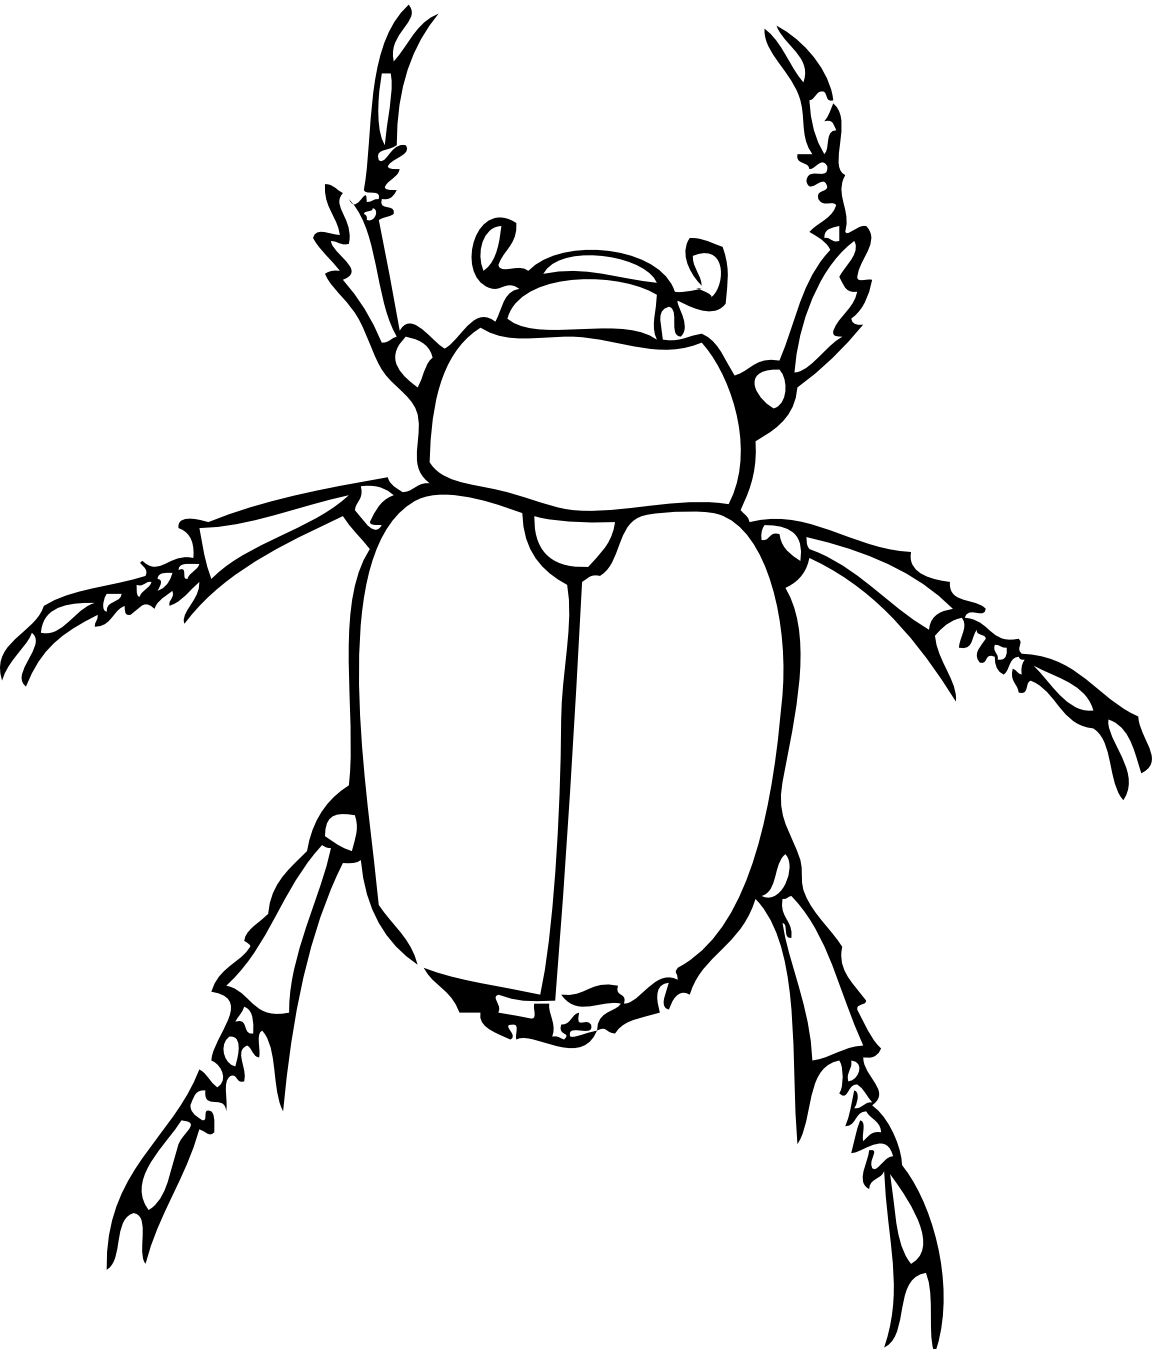 drawing insect ground beetle